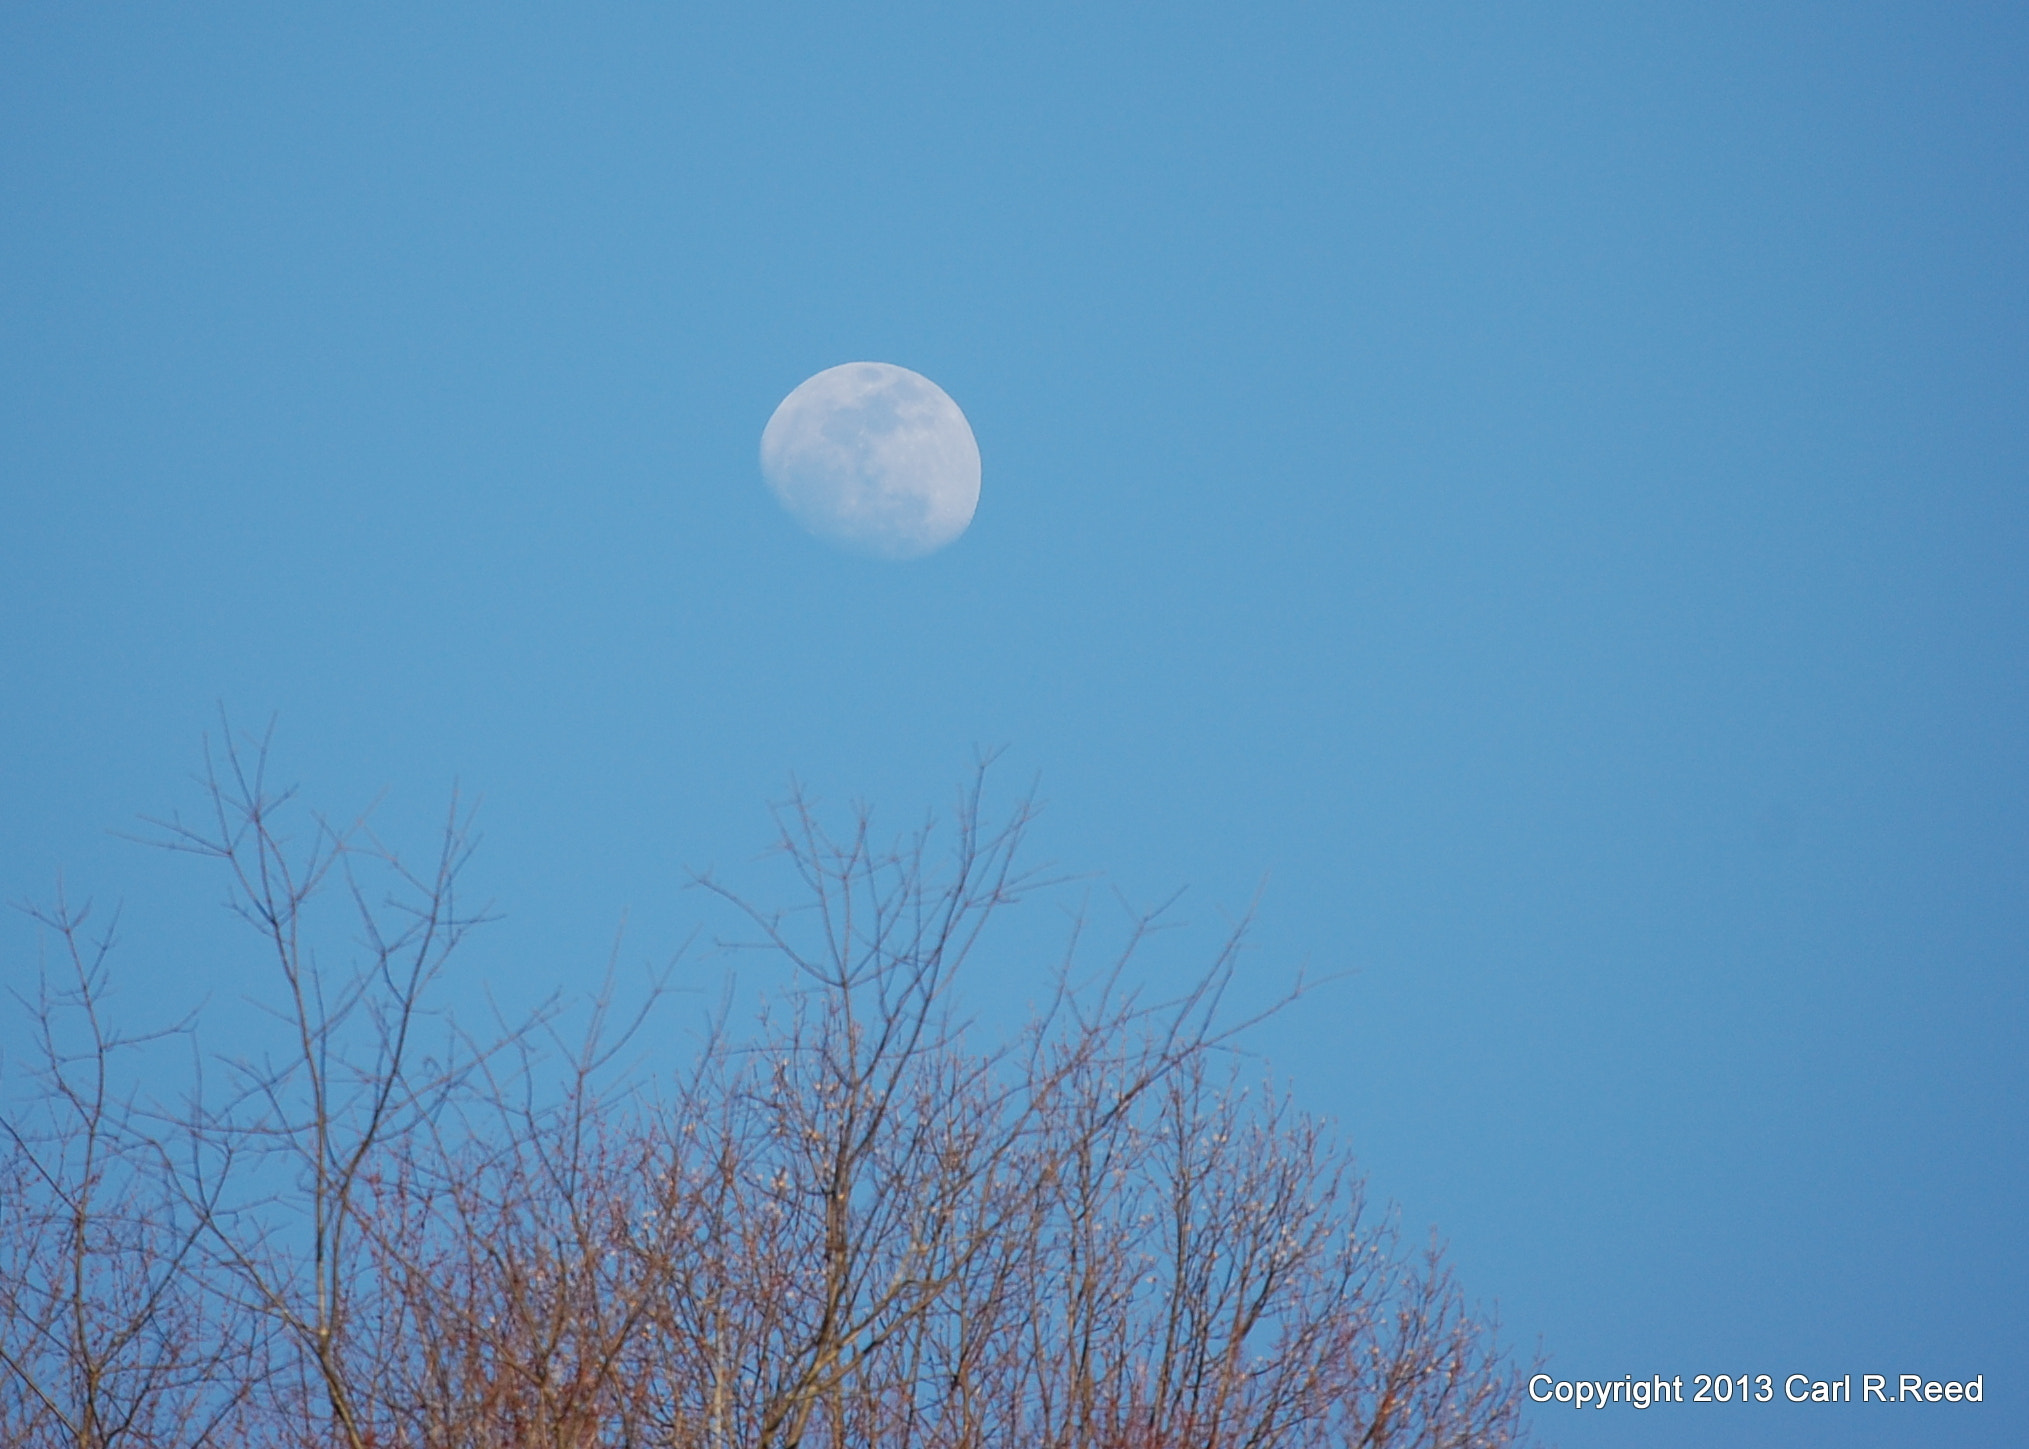 Photograph 3985-moon & trees by Carl Reed on 500px